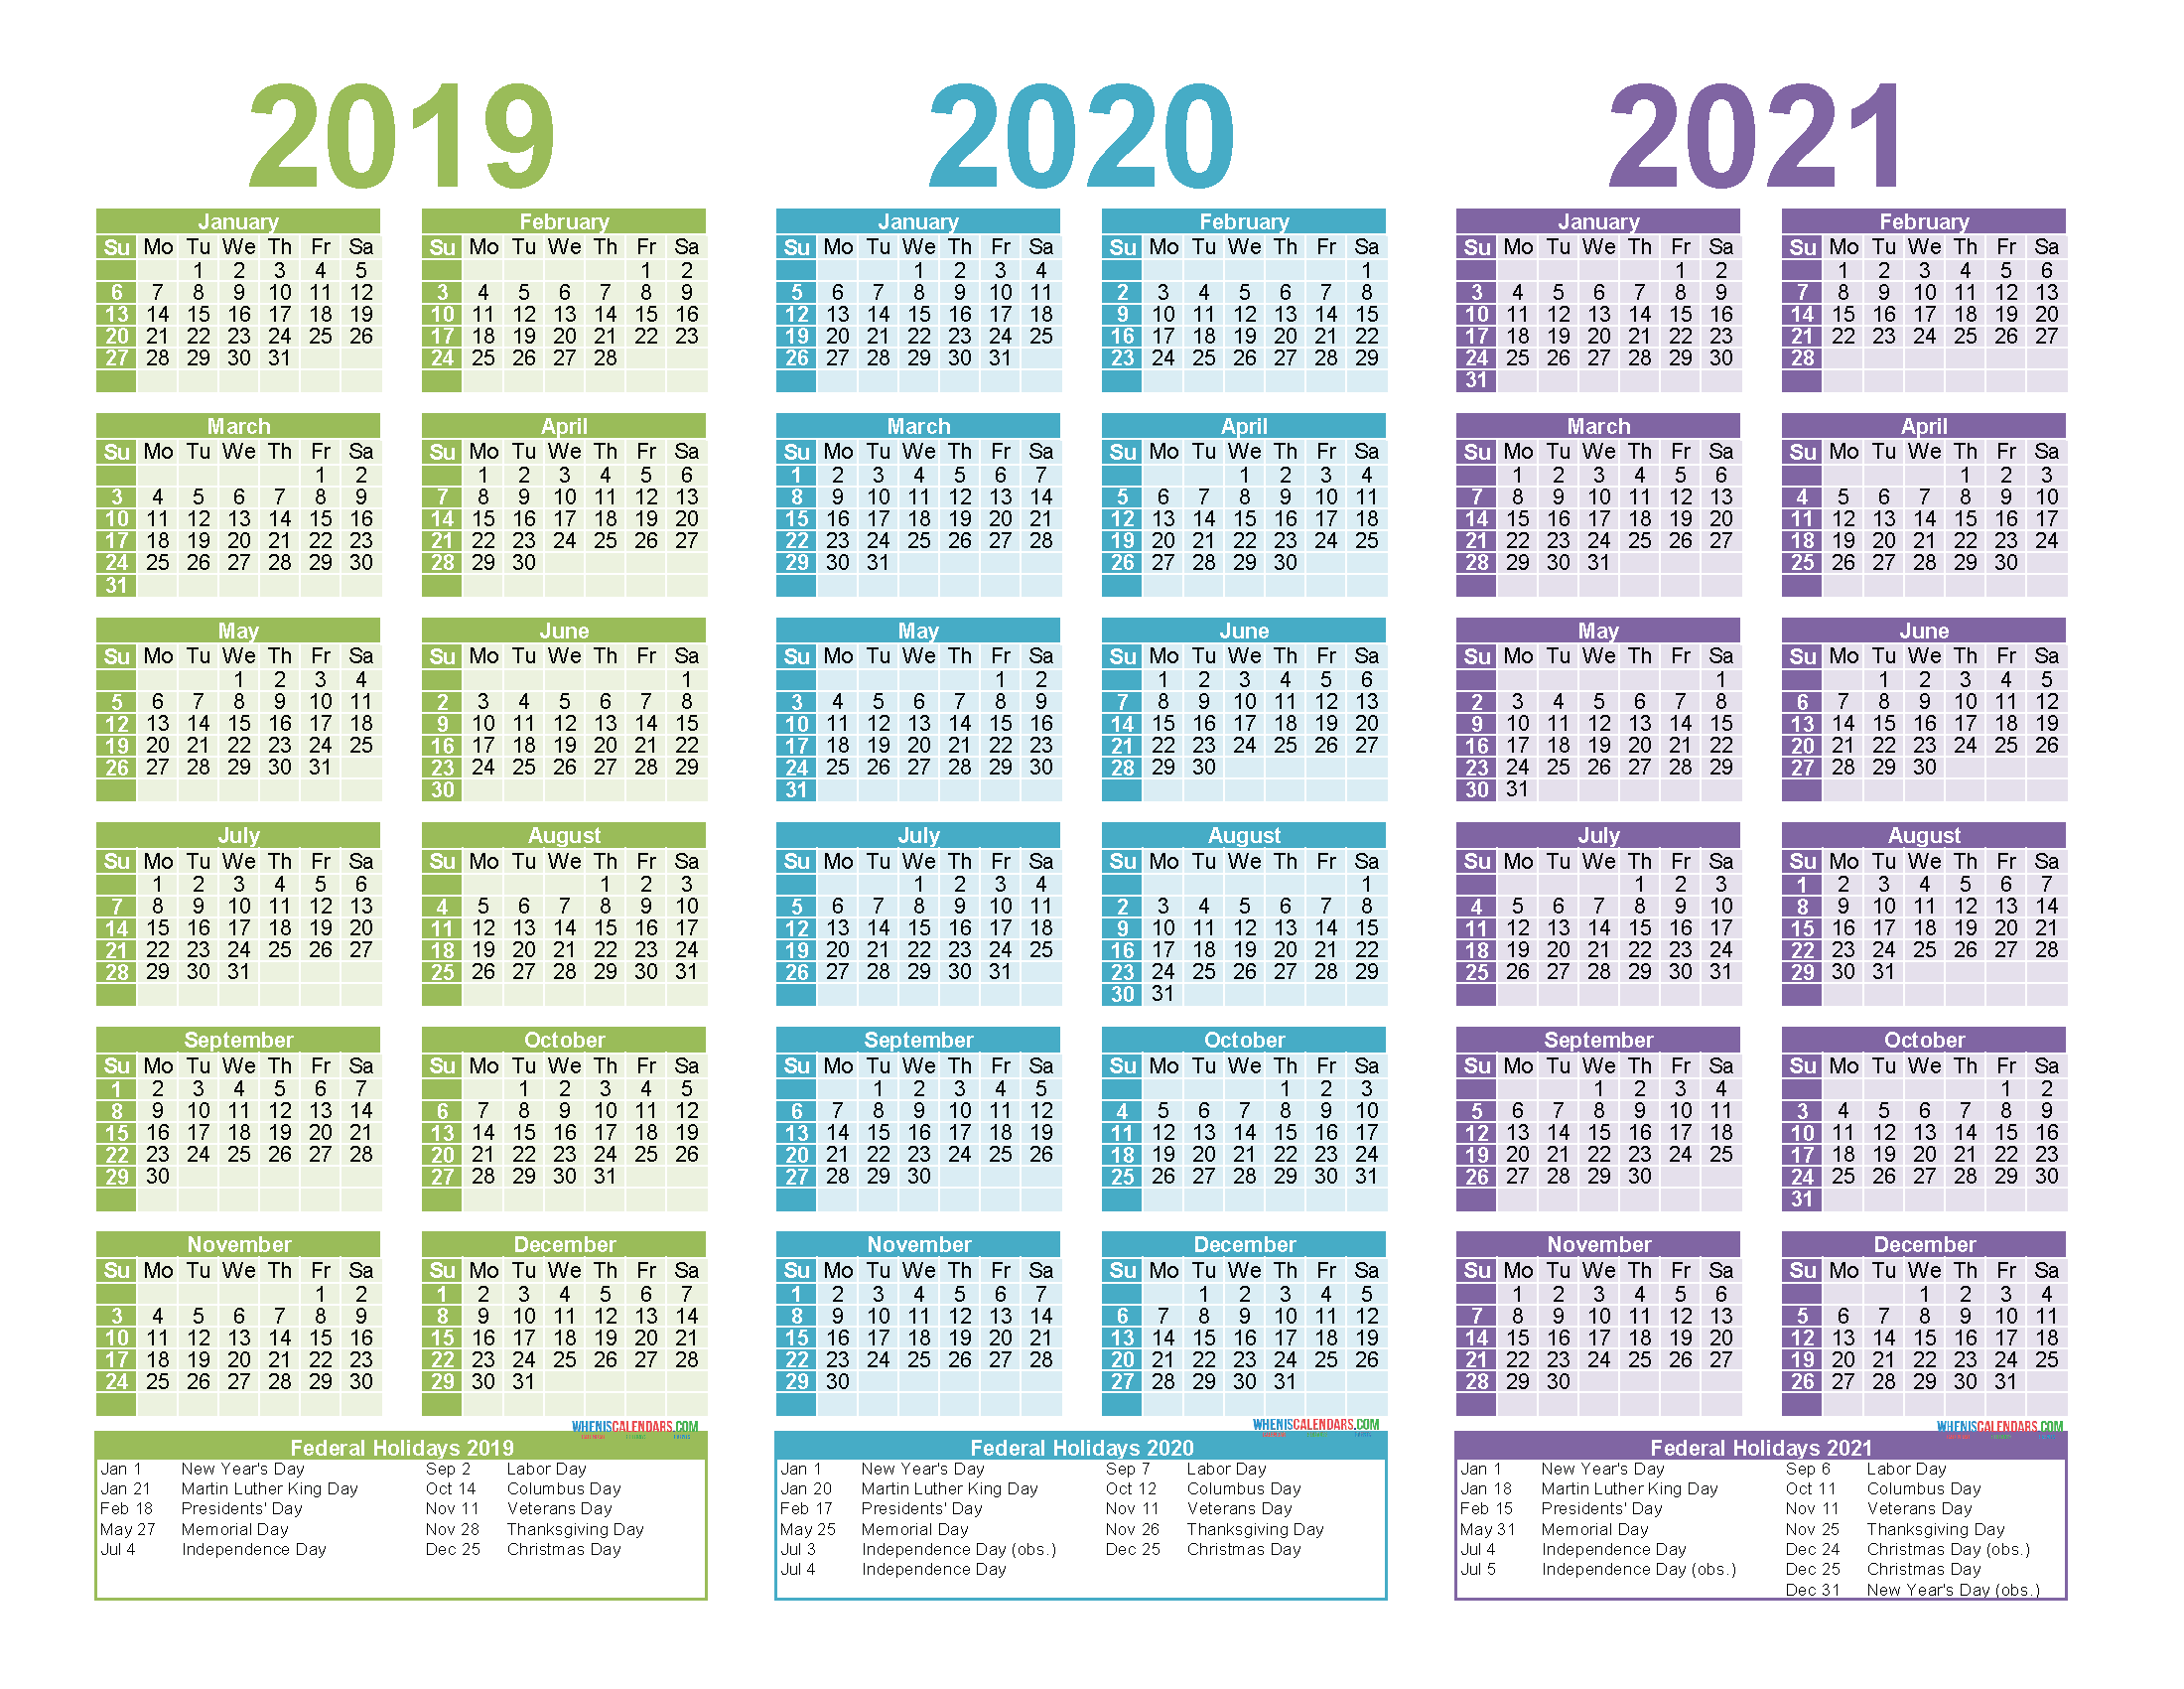 Free Printable 2019 2020 2021 Calendar with Holidays